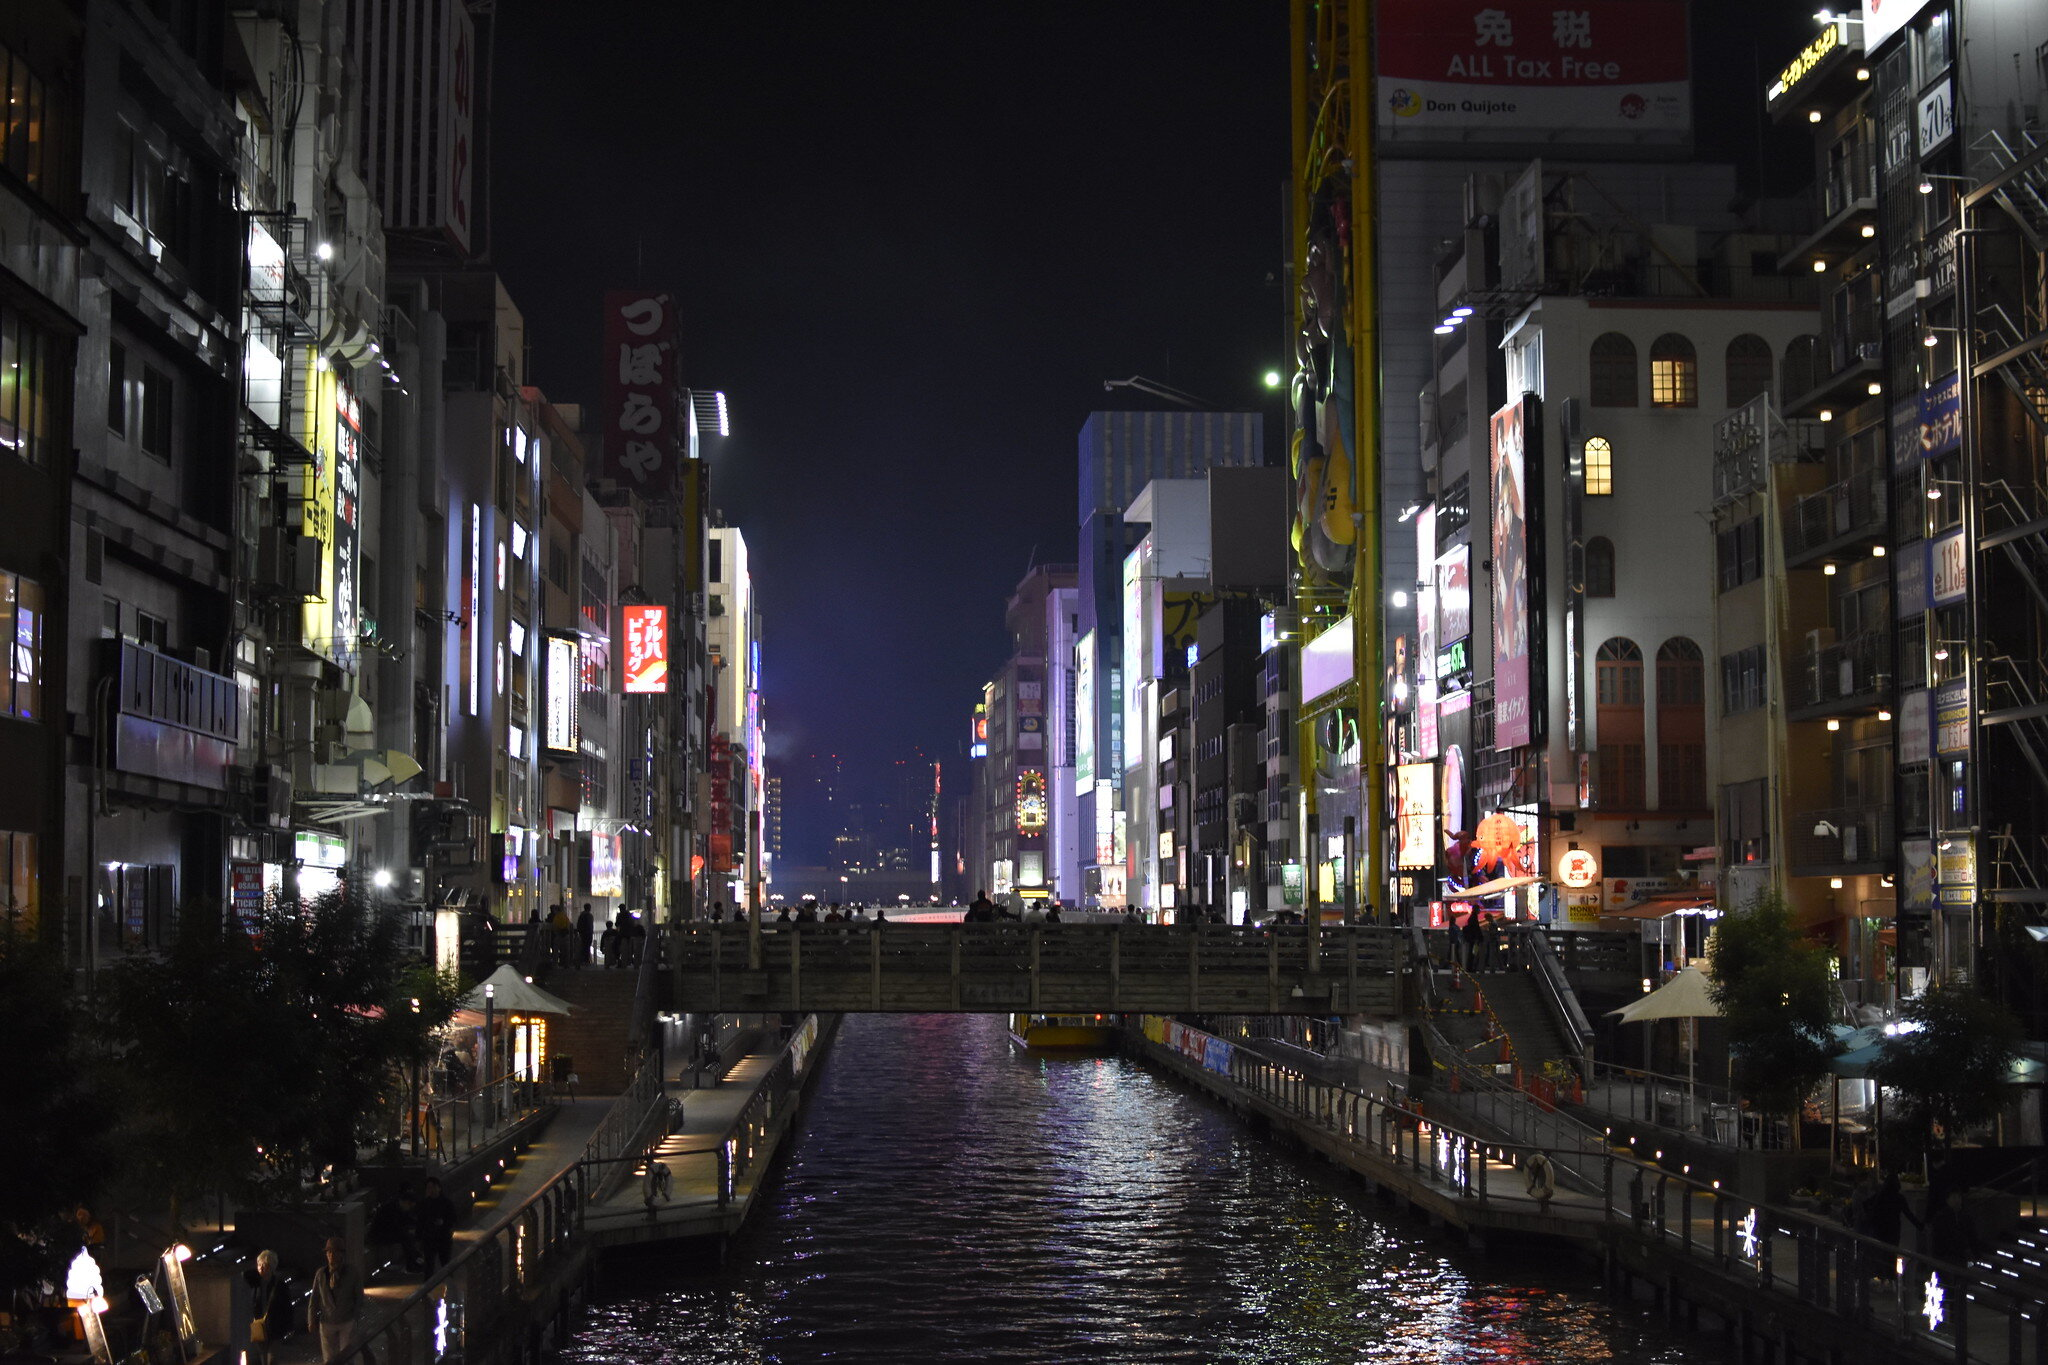 A night in Osaka. Photo by Heather Curfman